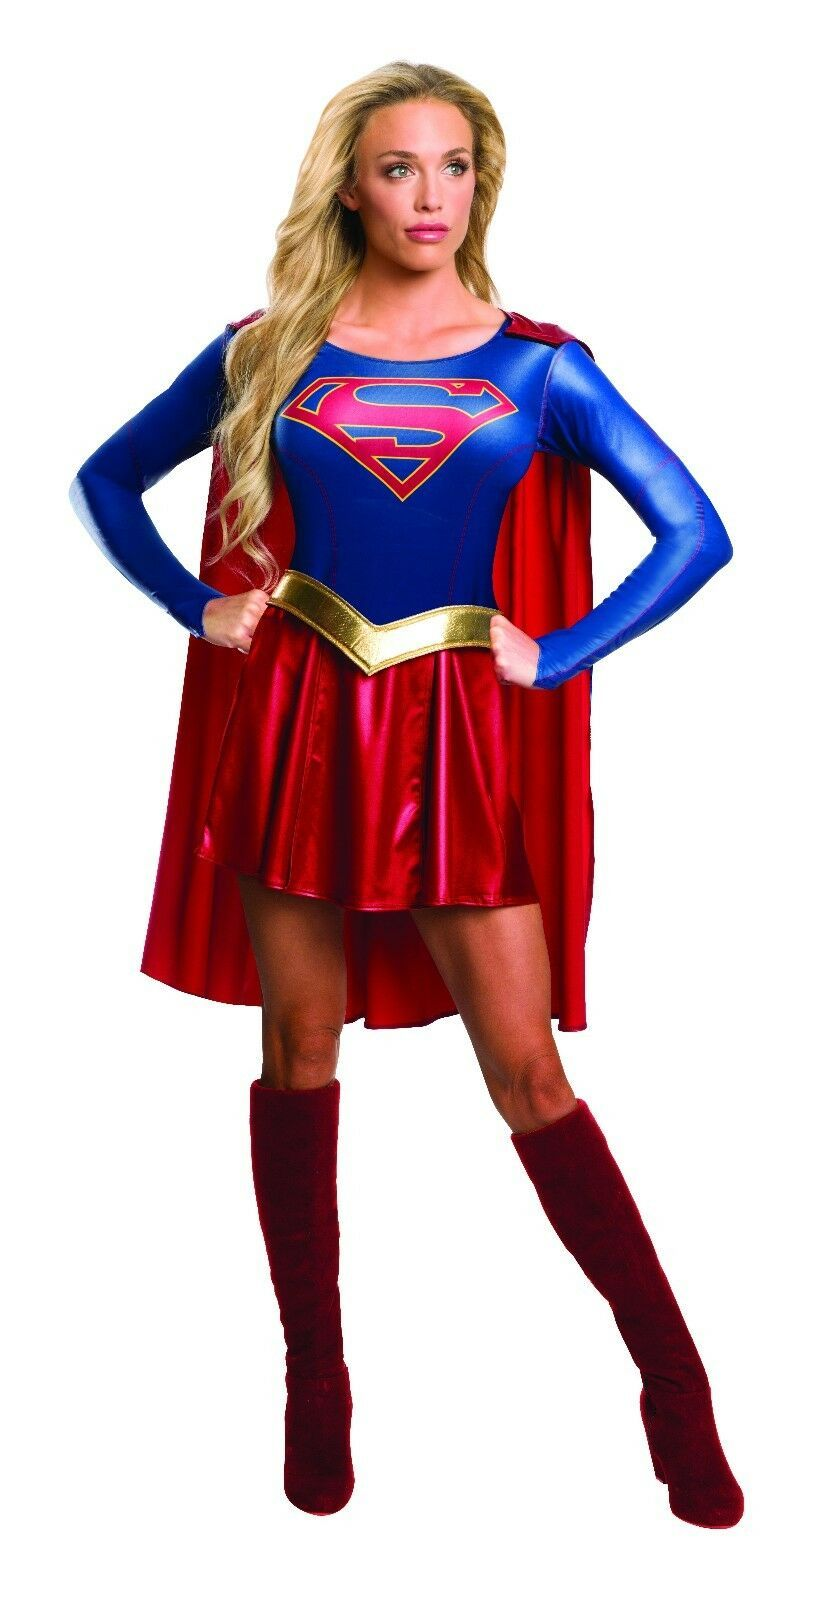 Primary image for Rubies Costume Adult Supergirl TV Series Womens DC Comic Outfit Halloween 620238